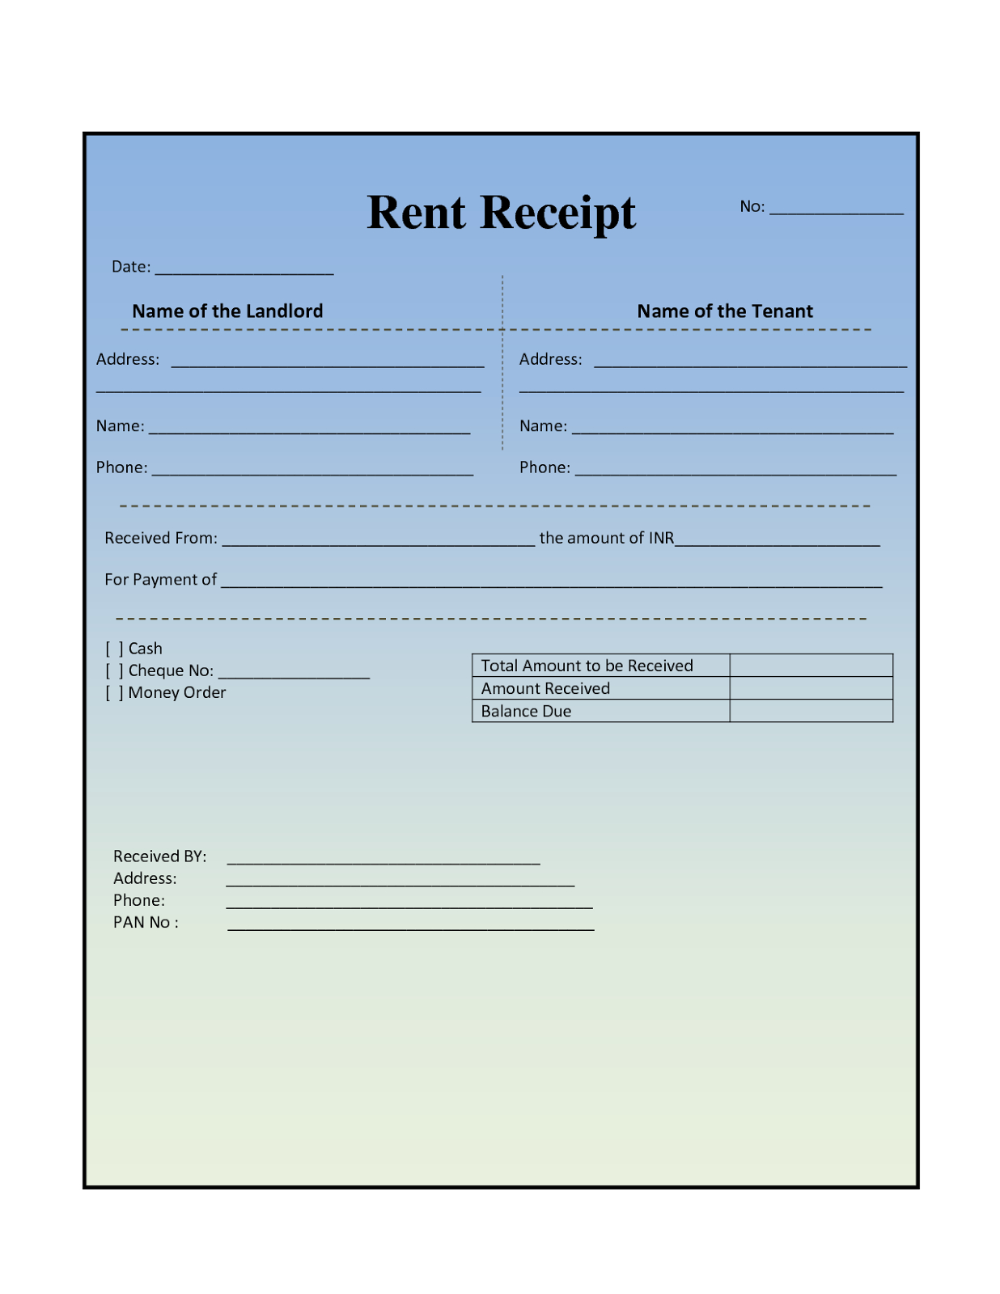 Monthly Rent Receipt Sample Template To Fill Out In Word And Pdf Regarding Monthly Rent Invoice Templat Invoice Template Invoice Format In Excel Invoice Sample